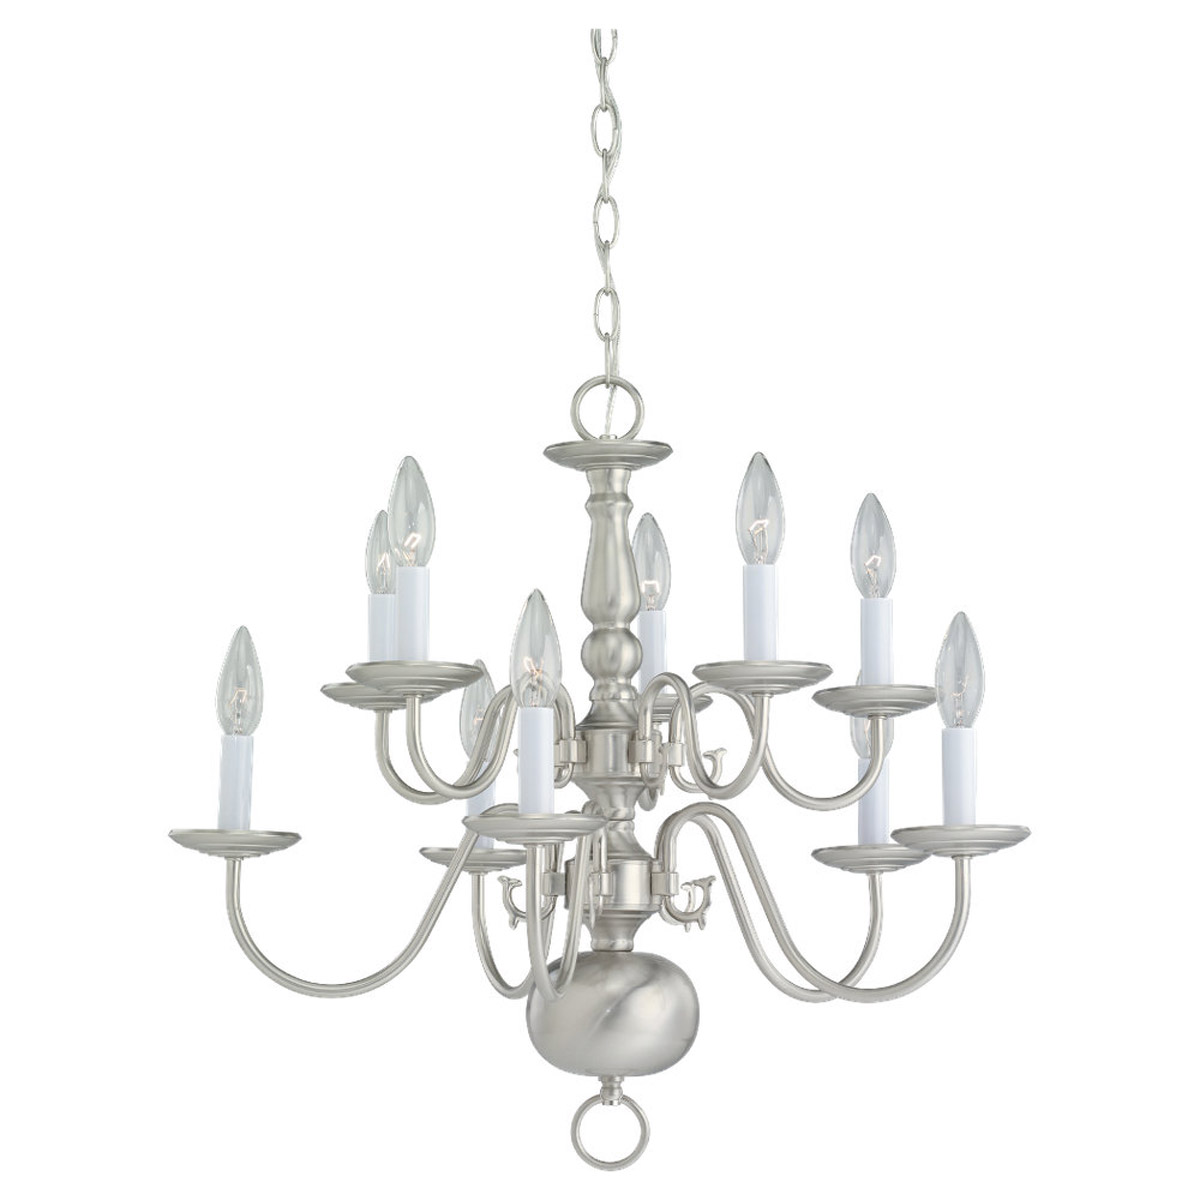 Brushed Nickel Steel Traditional Chandeliers